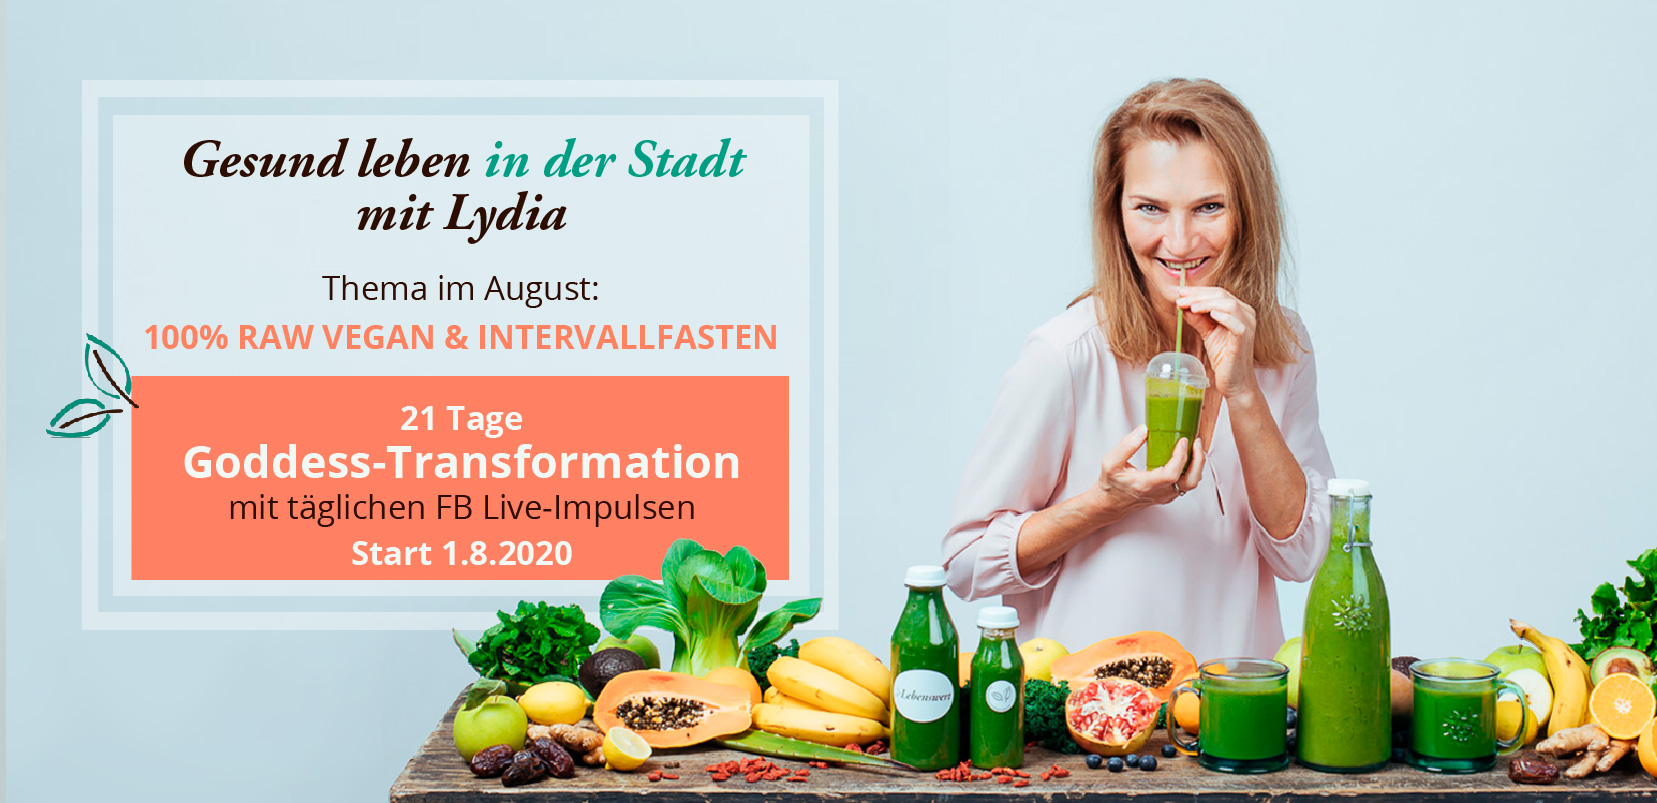 21 Tage Goddess-Transformationmit täglichen FB Live-Impulsen Start 1.8.2020